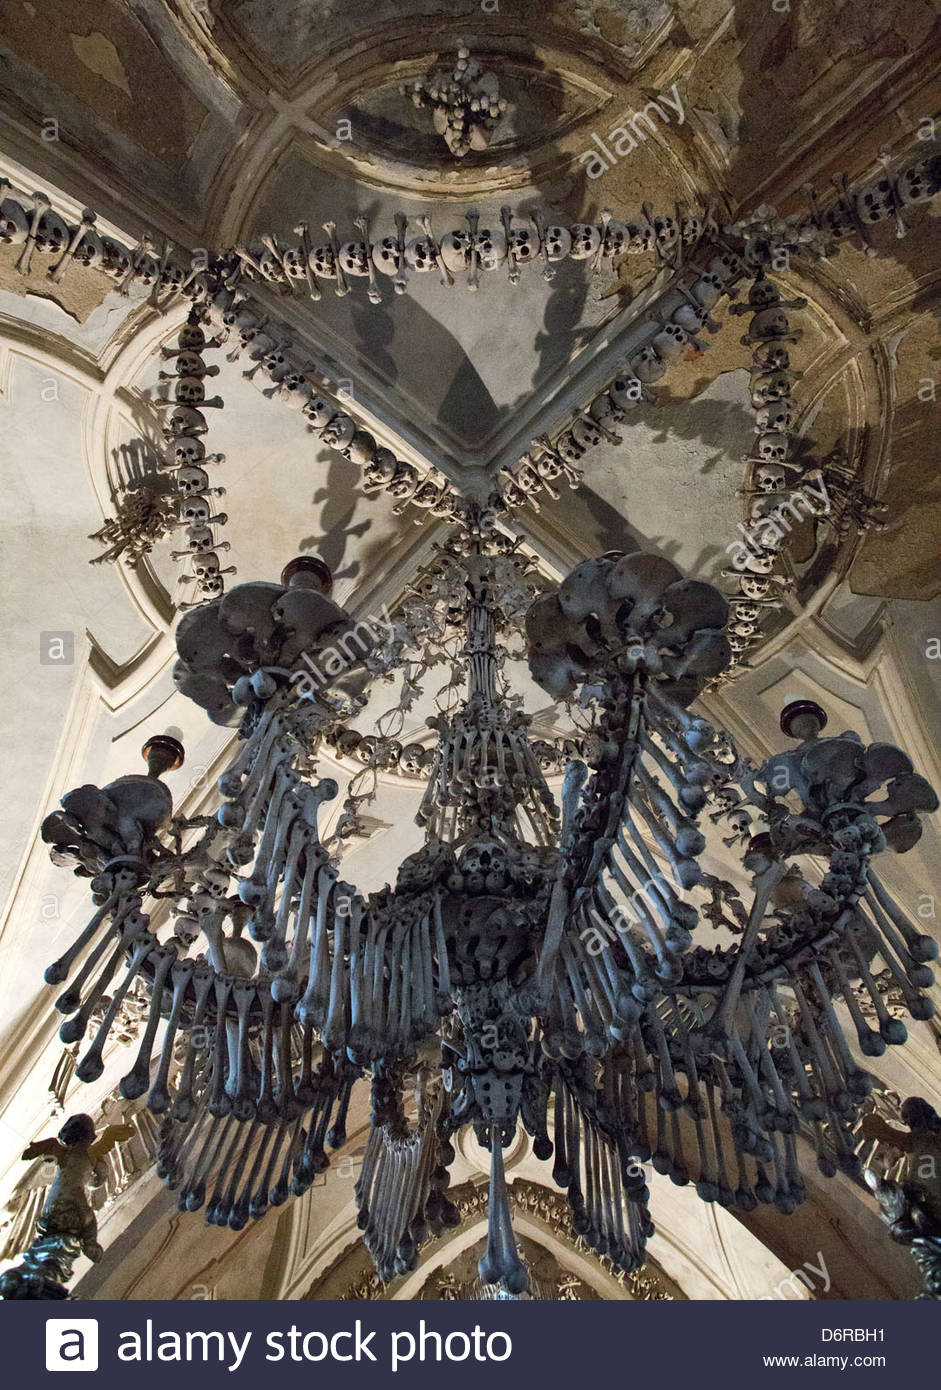 Czech republic kutna hora bone church bone chandelier stock photo czech republic kutna hora bone church bone chandelier aloadofball